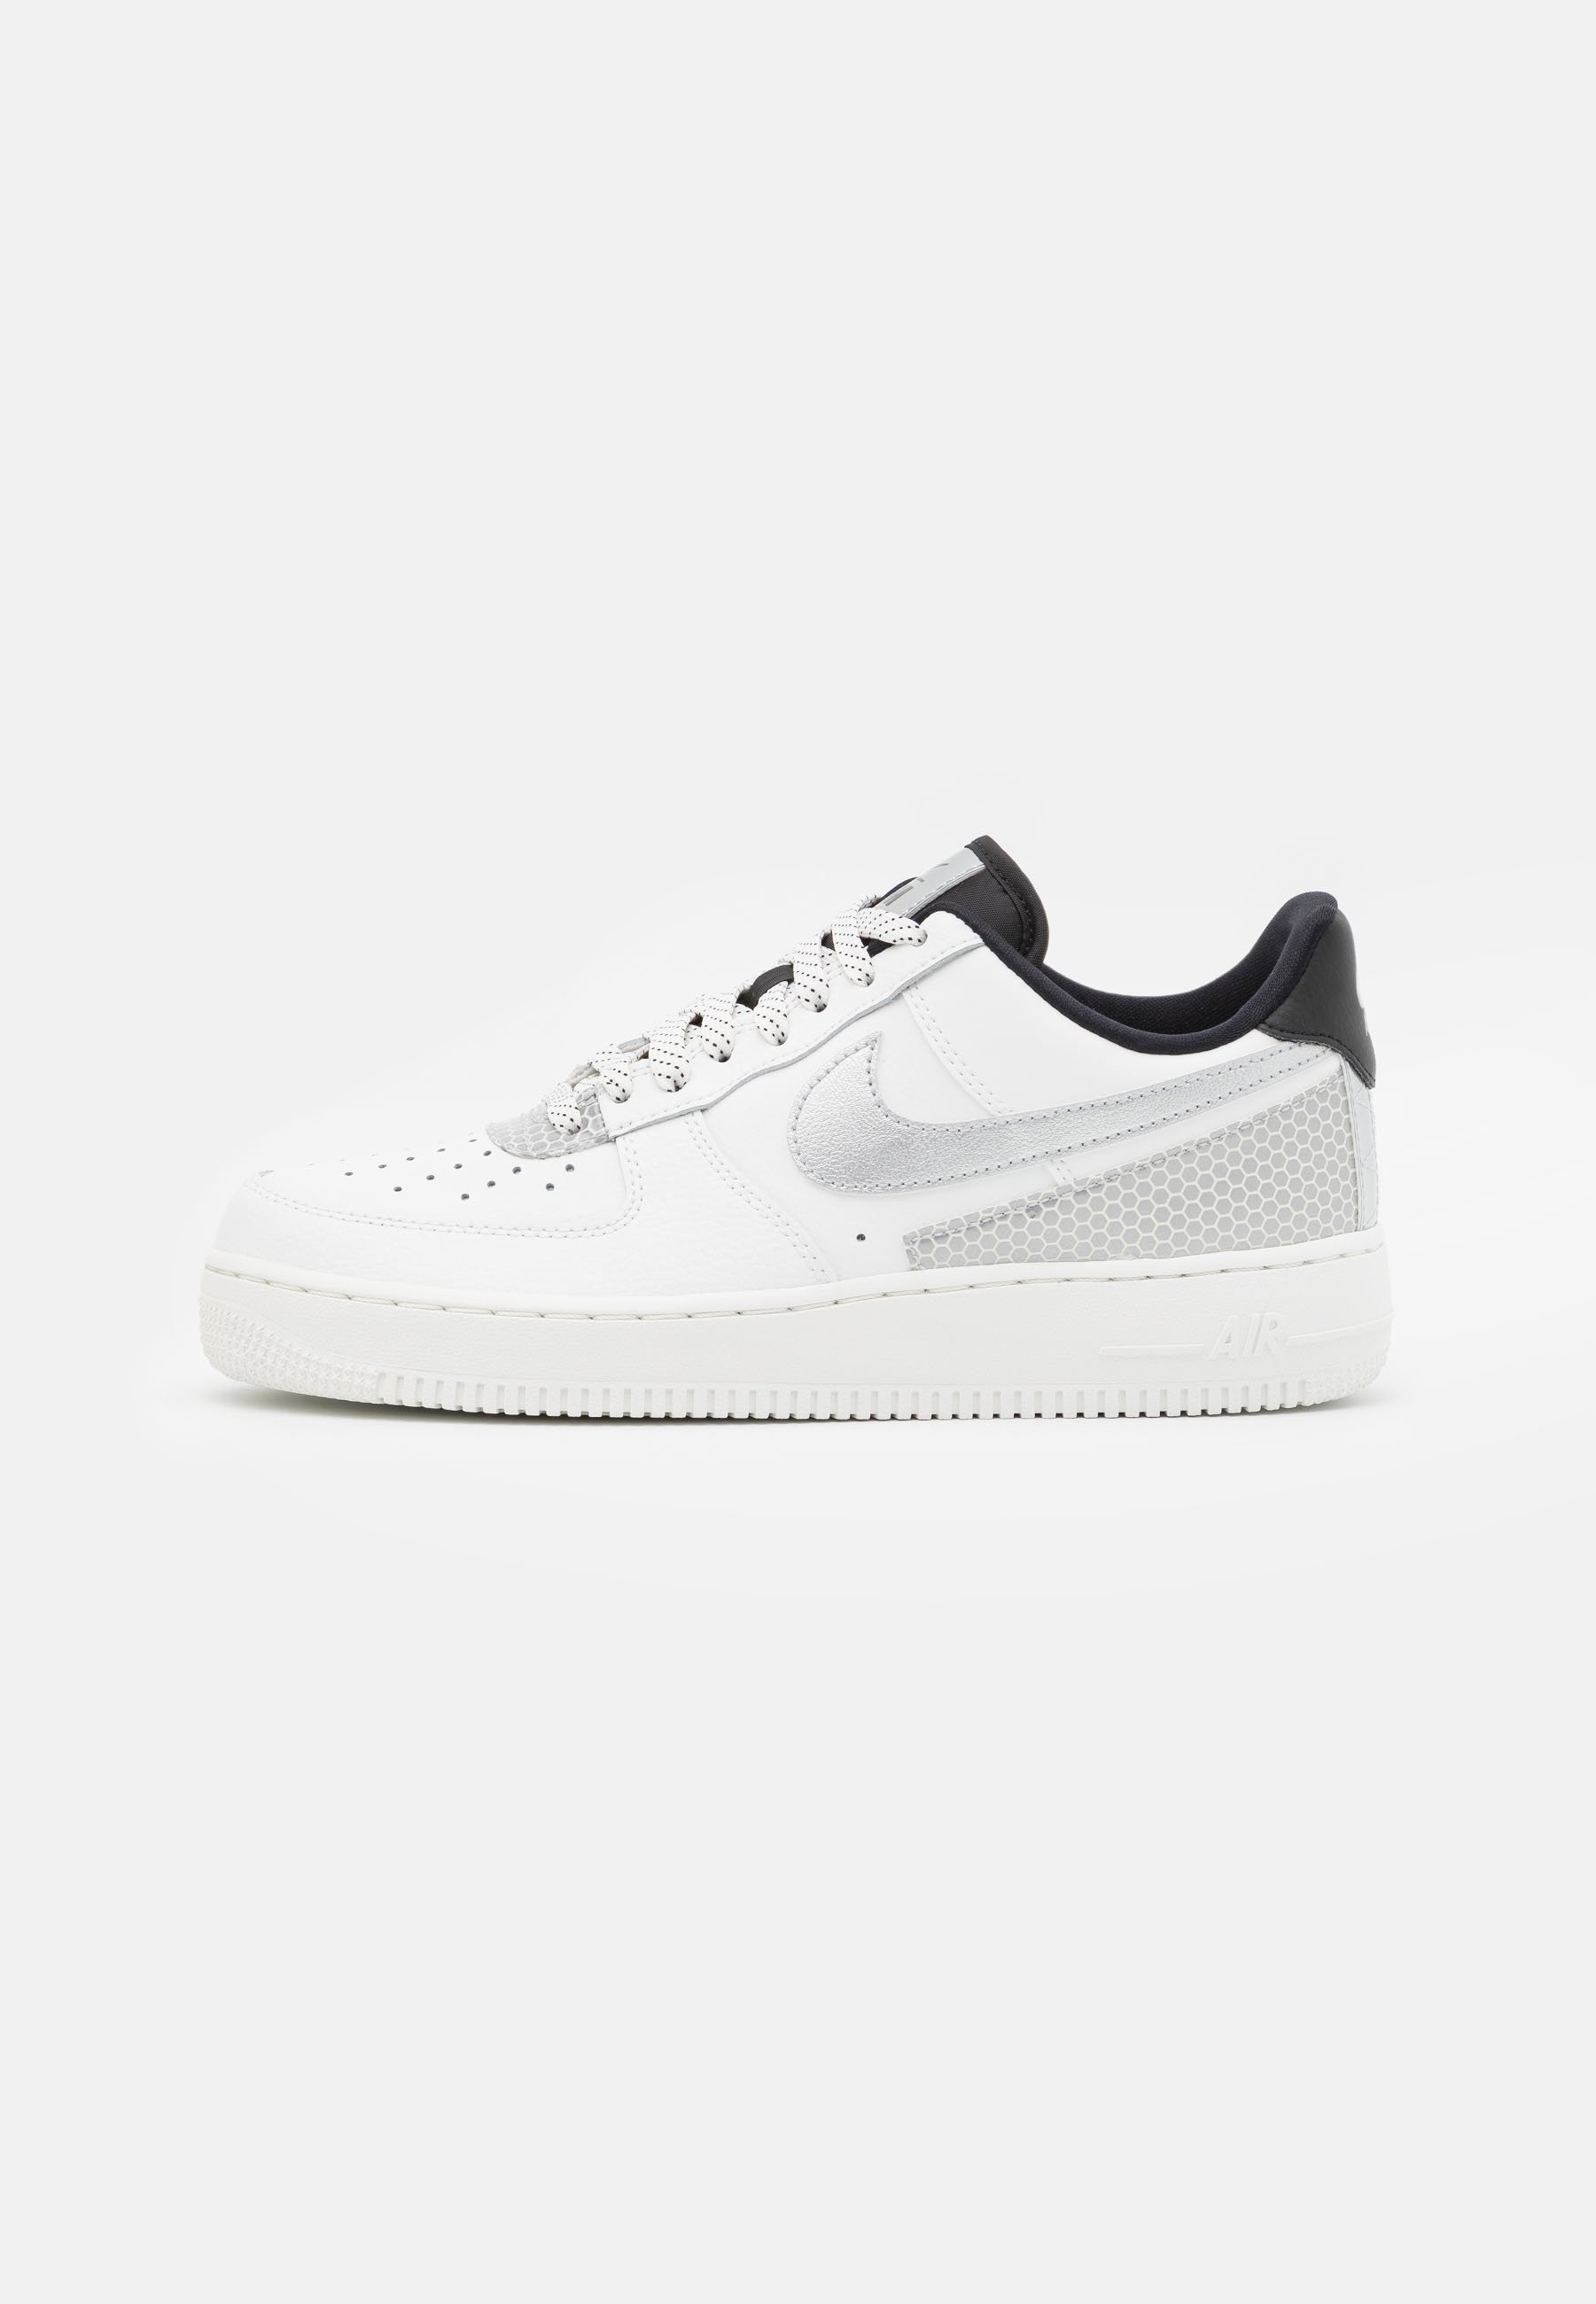 Nike Sportswear Air Force 1 07 Lv8 3m Unisex Sneakers Laag Summit White Black Wit Zalando Nl